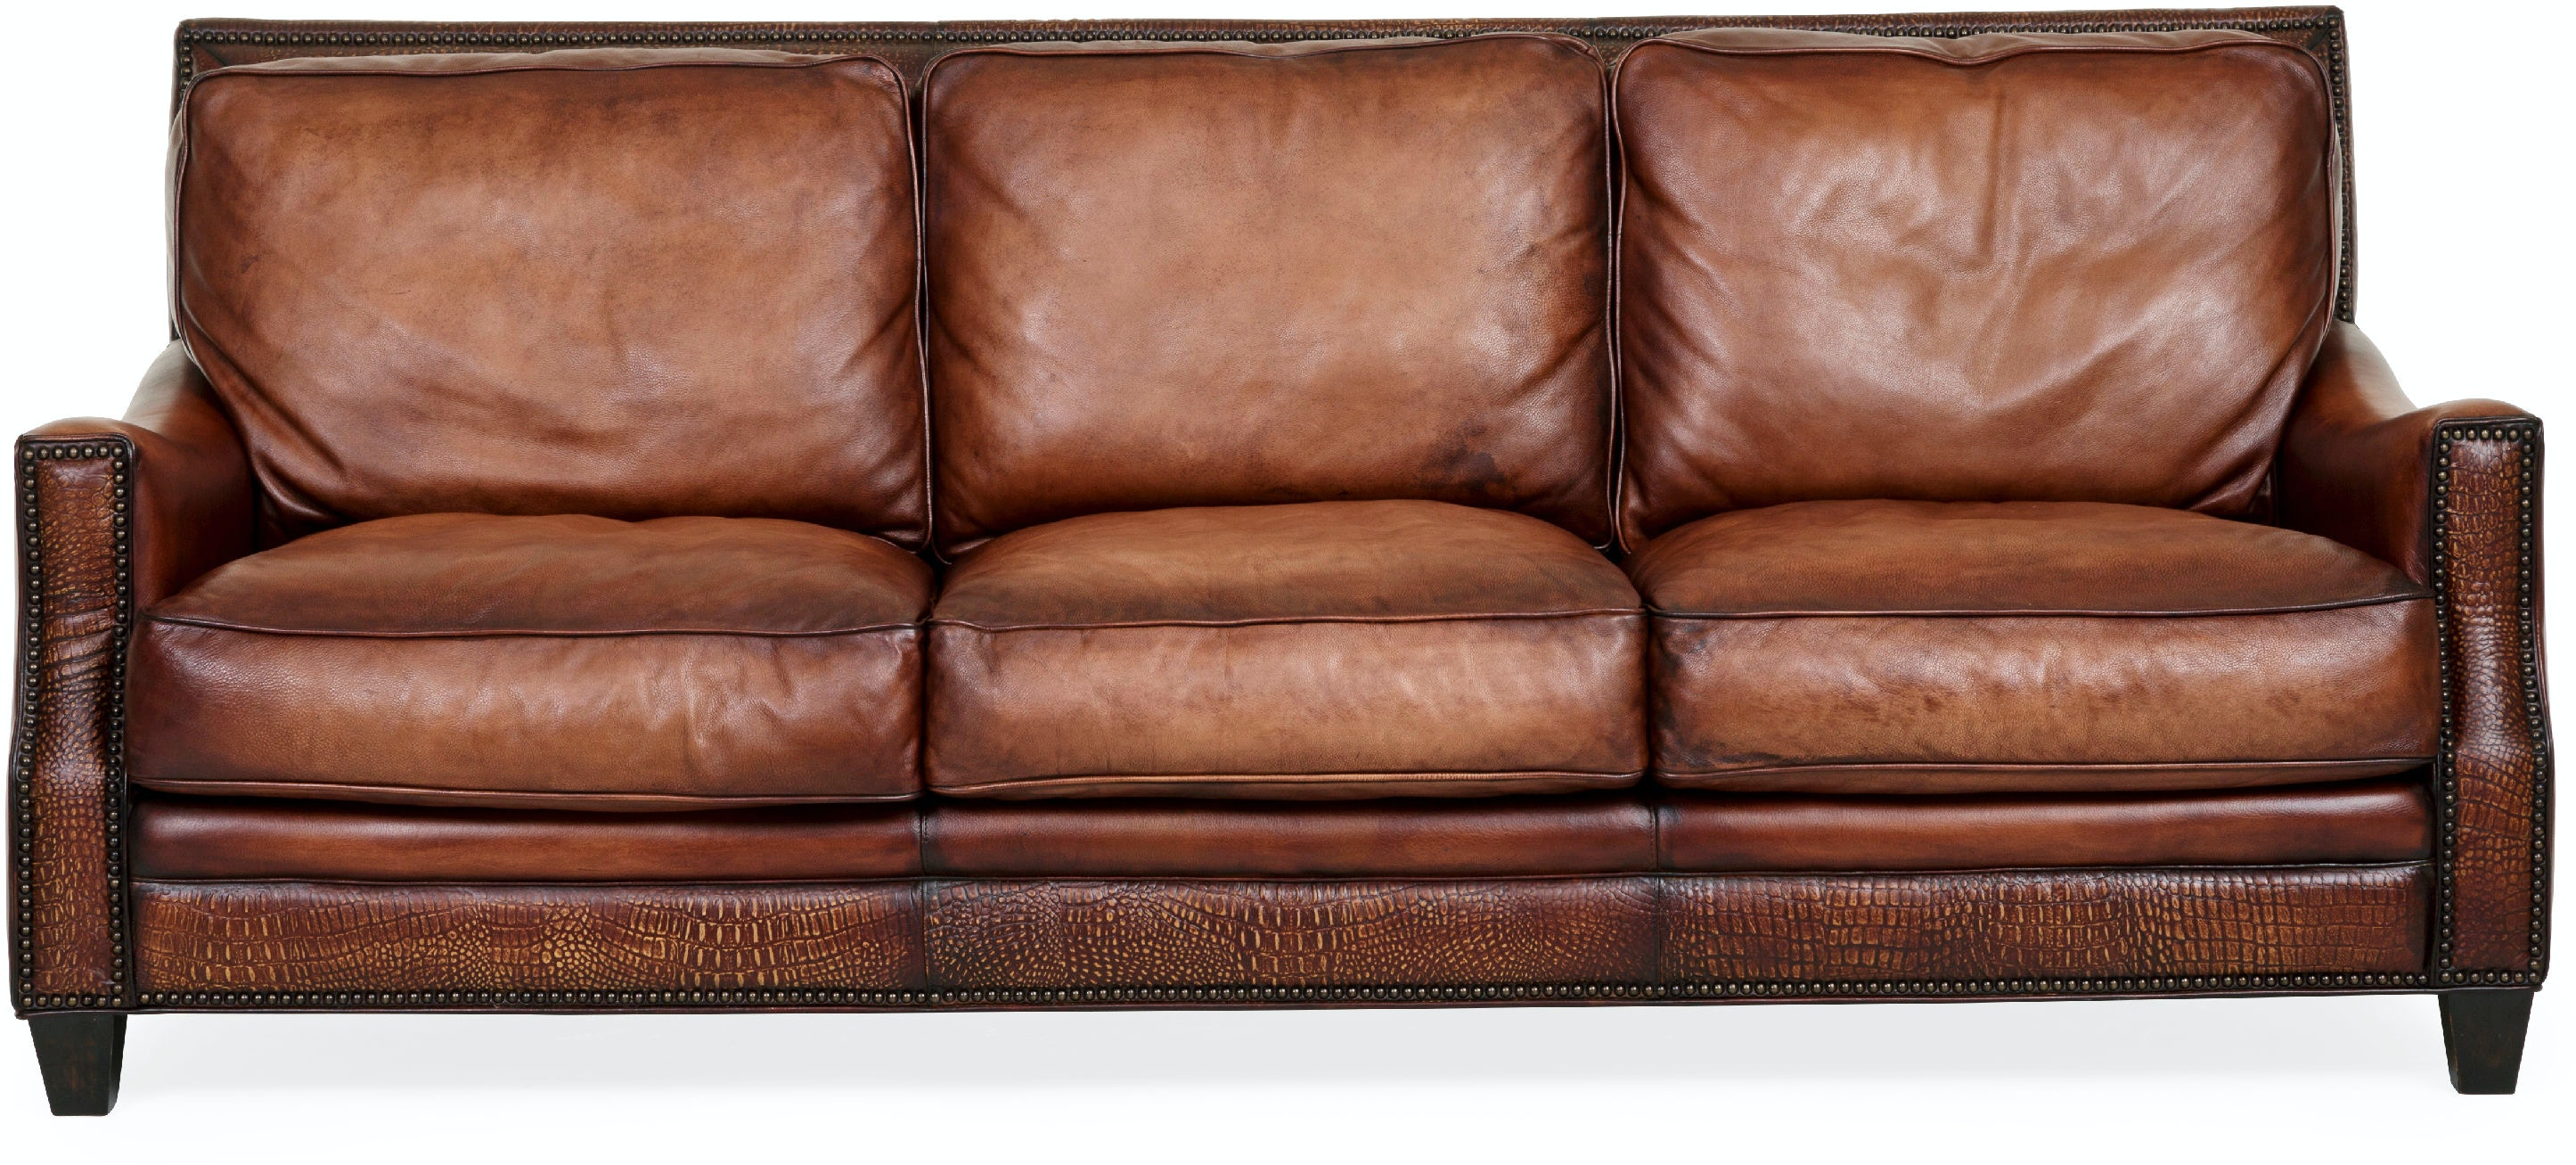 100 Brown Leather Sofa Beds Leather Sofas And  : 390376a from 45.77.108.62 size 1024 x 768 jpeg 64kB